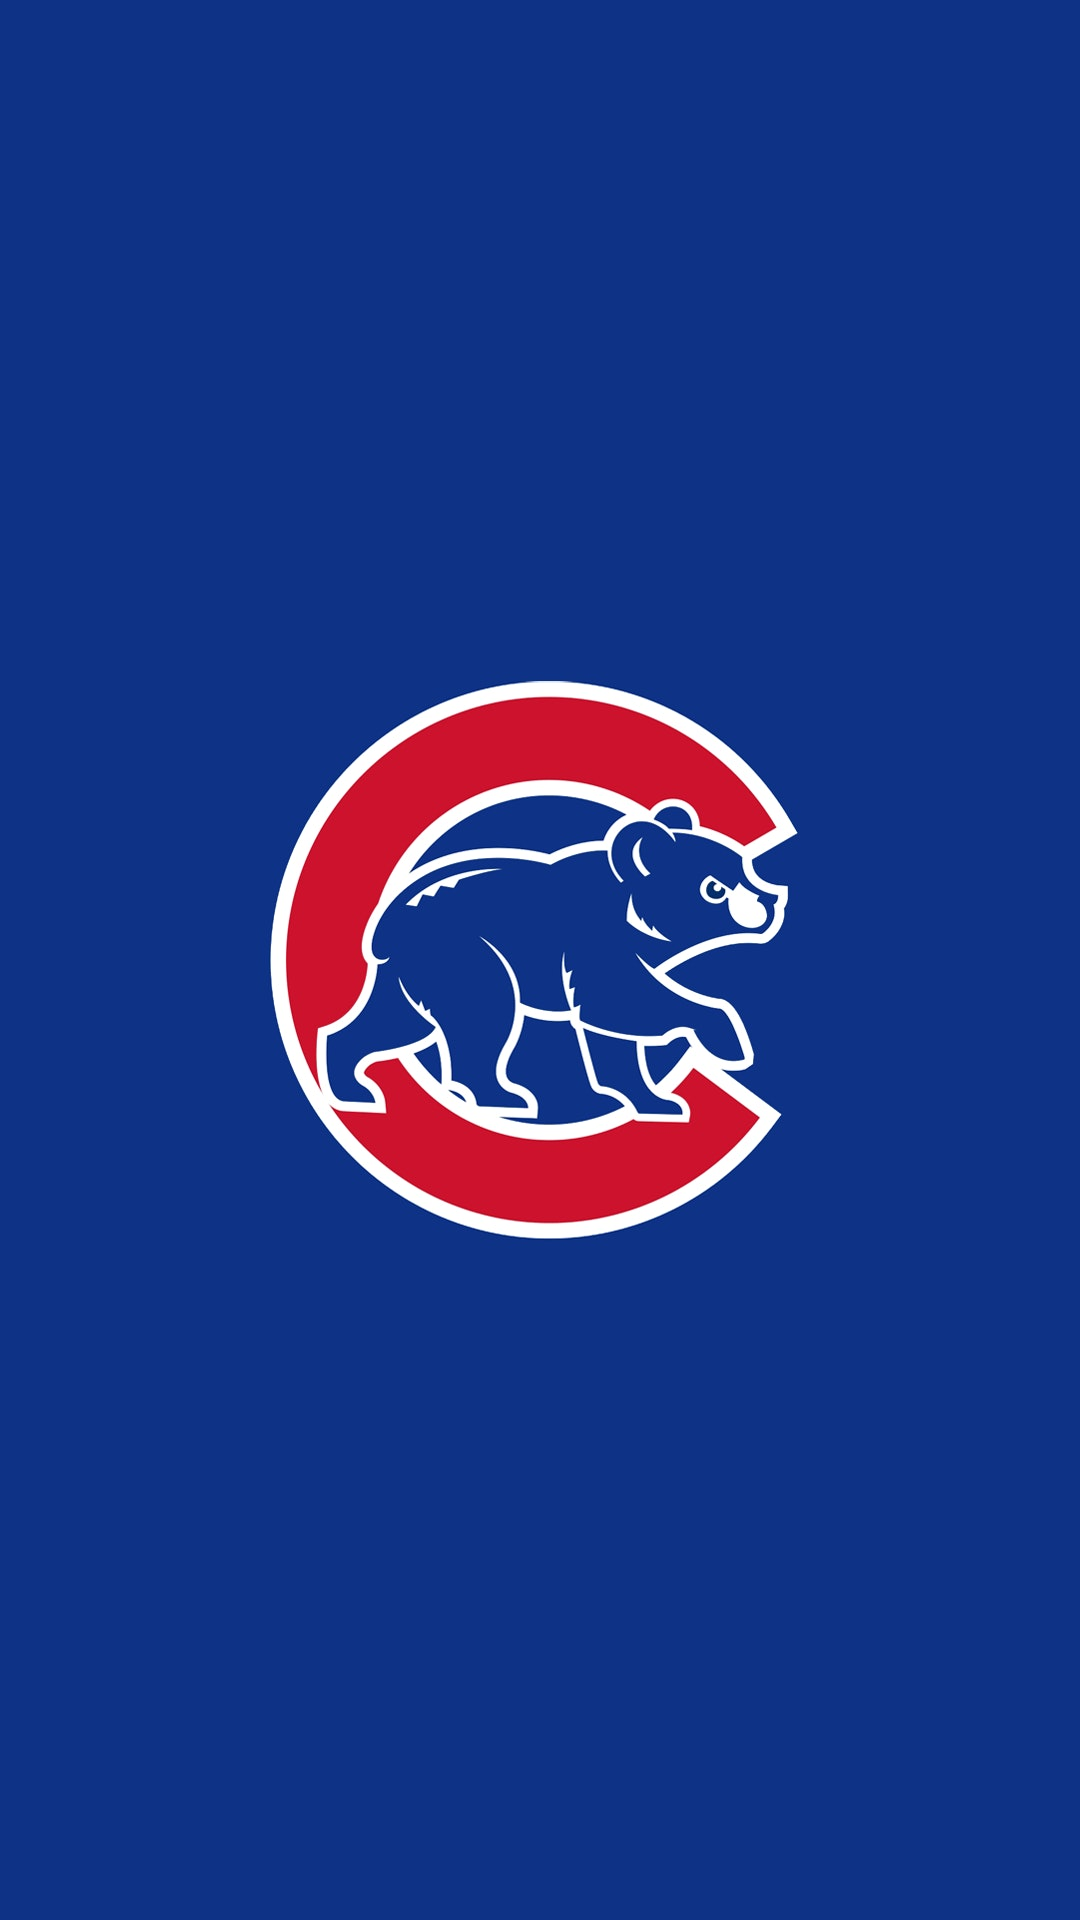 Go cubs go by chicago cubs electric objects buycottarizona